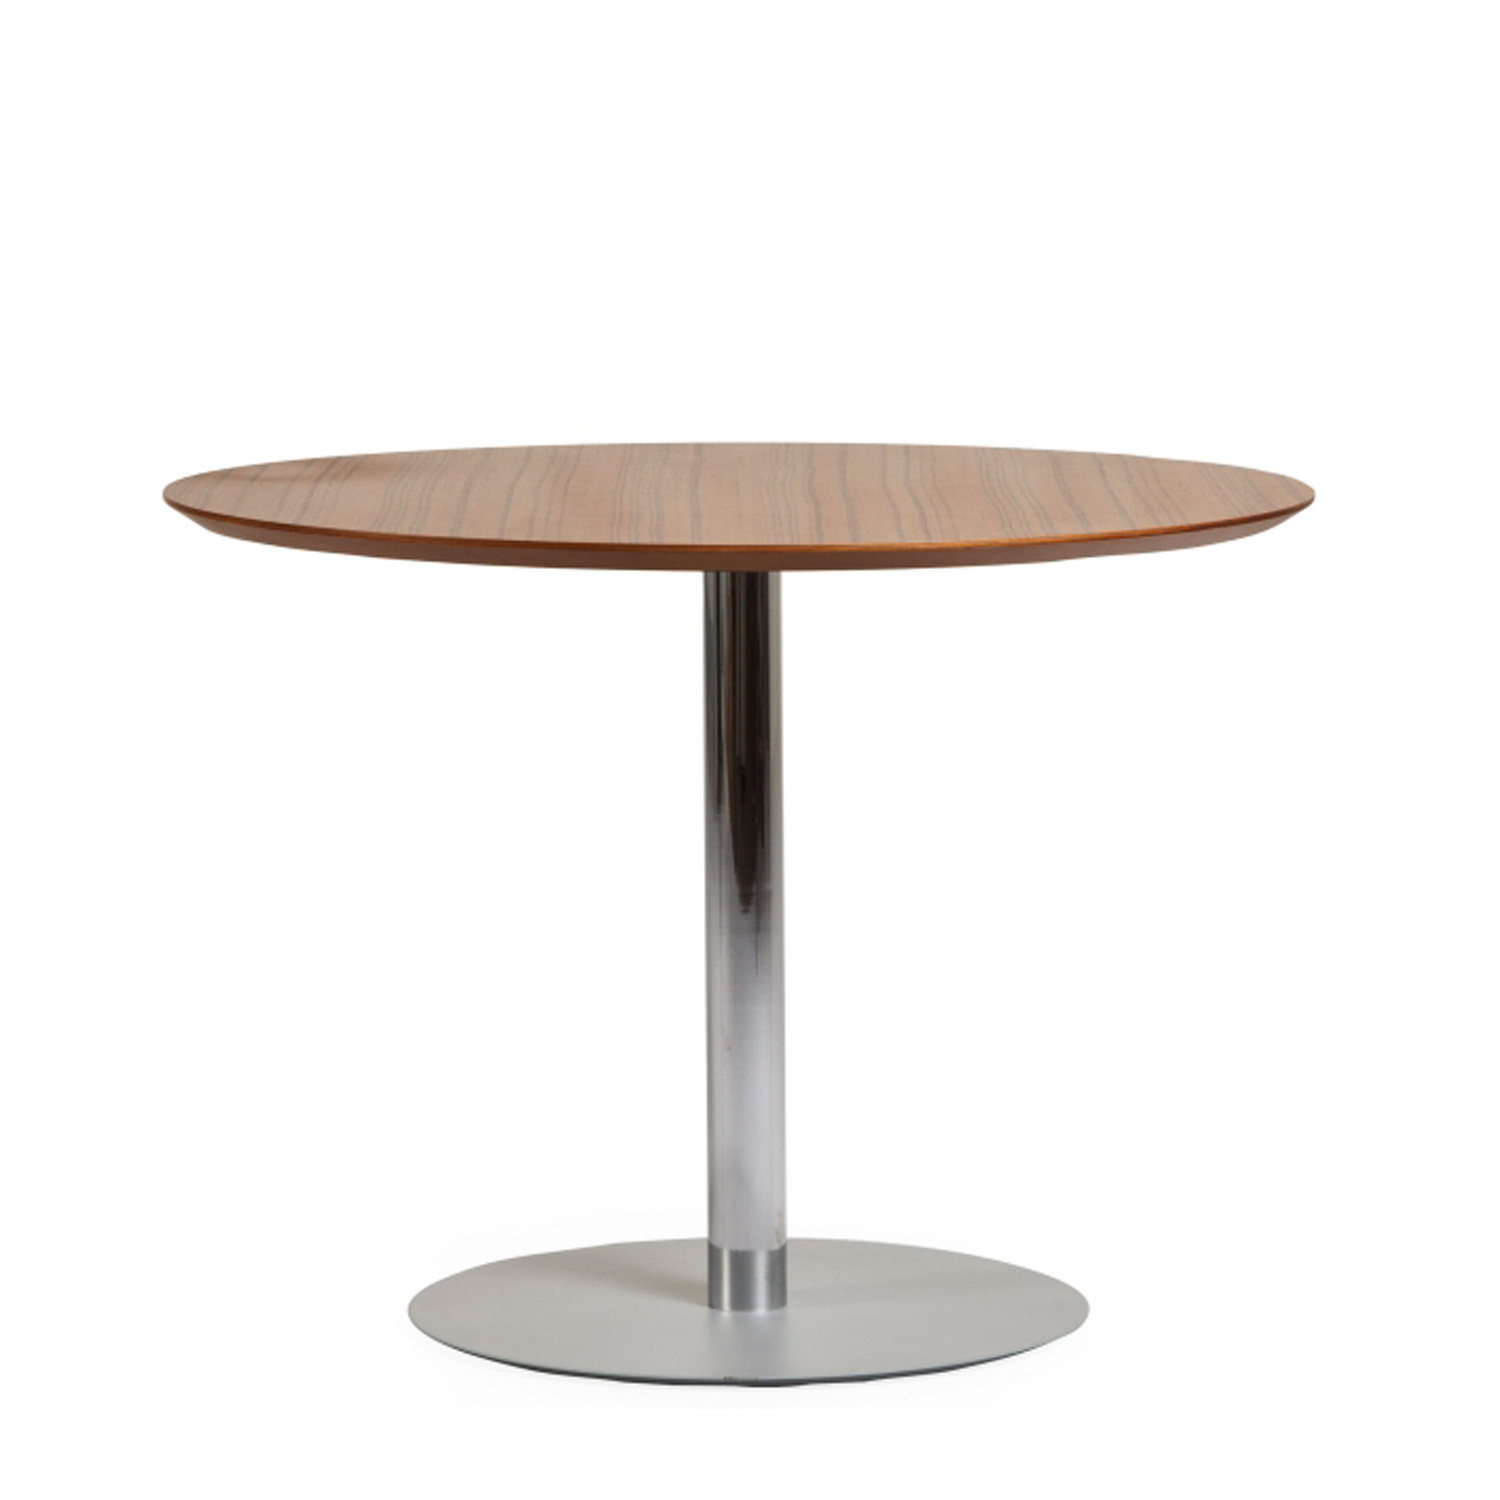 Guamba Tables with Wooden Top